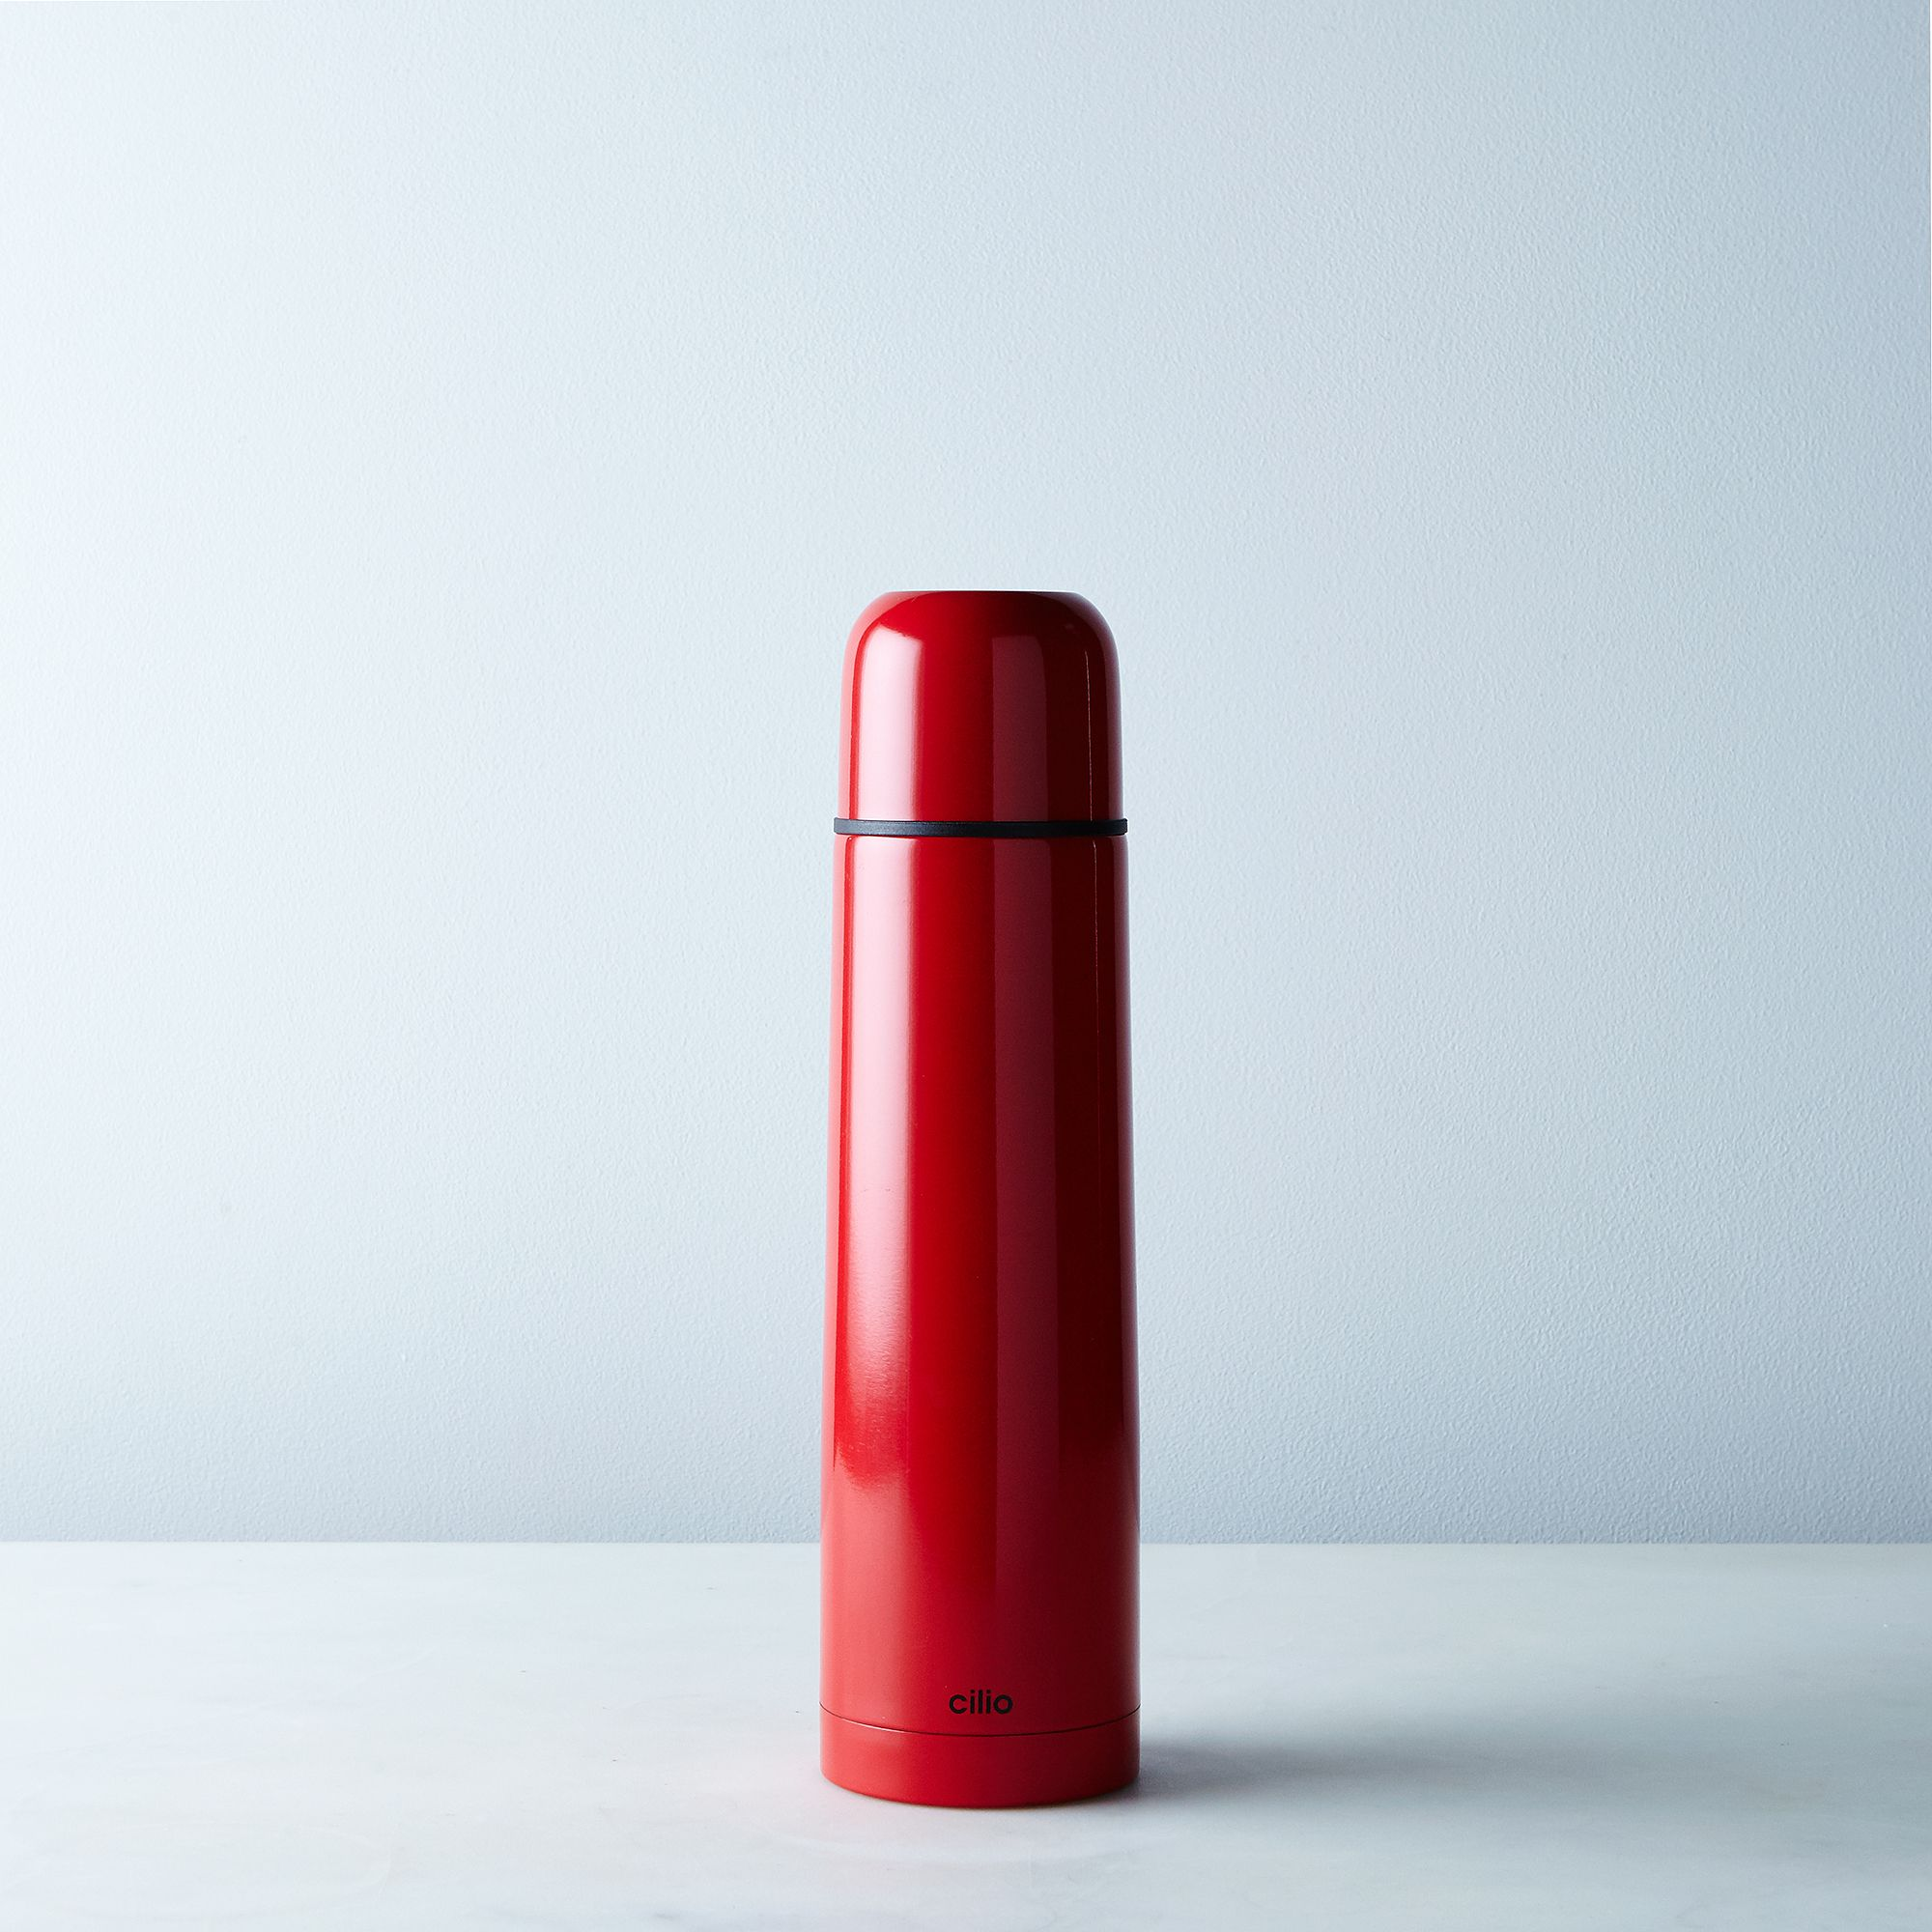 Bf4d994c a0f8 11e5 a190 0ef7535729df  2015 0729 frieling insulated travel bottle small red silo rocky luten 001